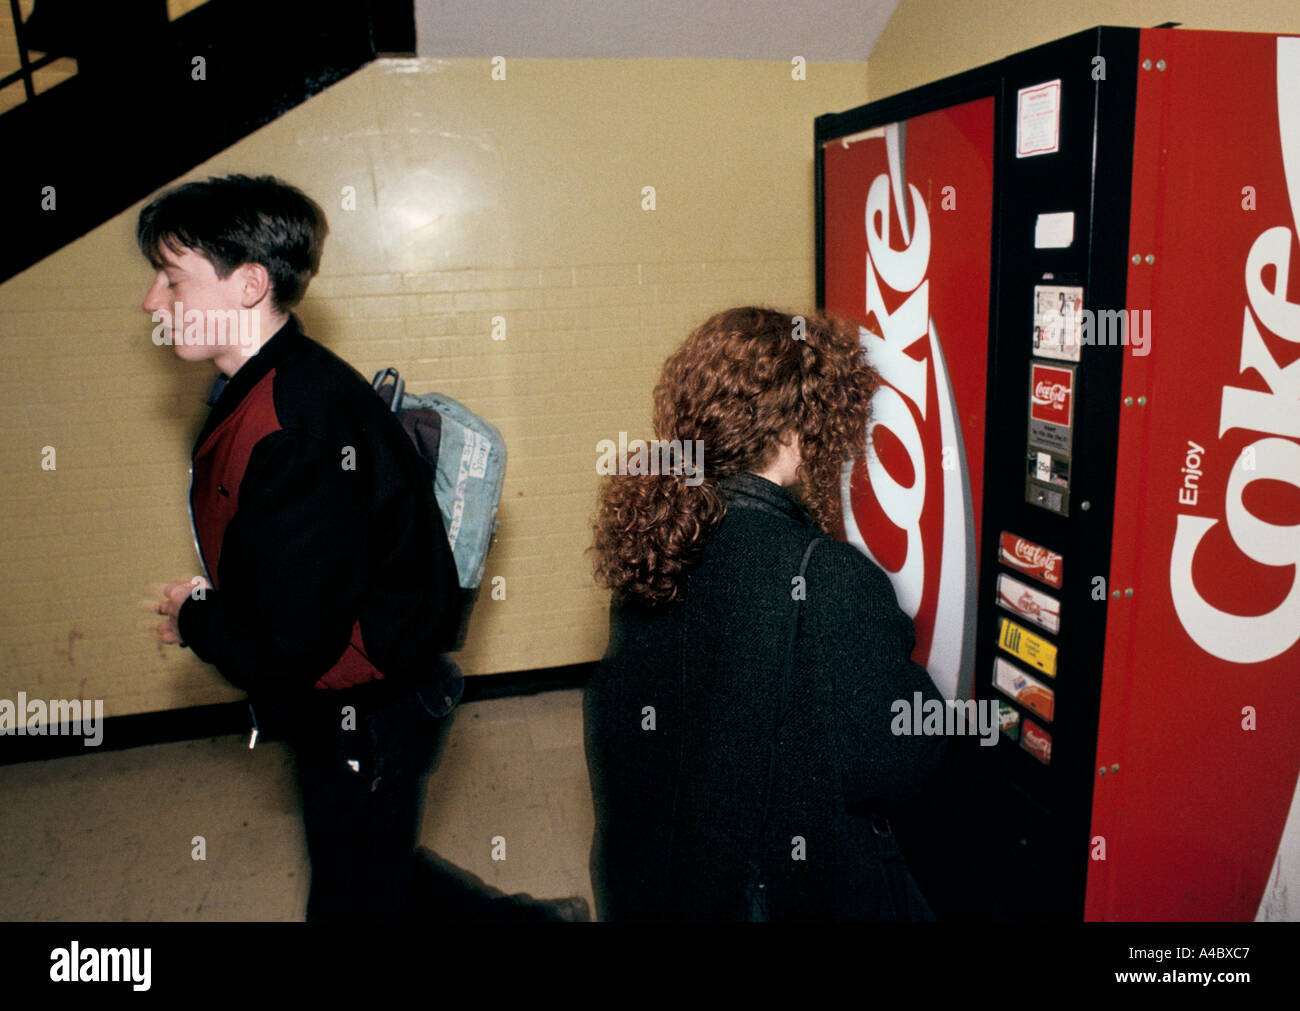 SECONDARY SCHOOL CHILDREN STANDING BY A VENDING MACHINE HOLYROOD SCHOOL GLASGOW, 1990 - Stock Image